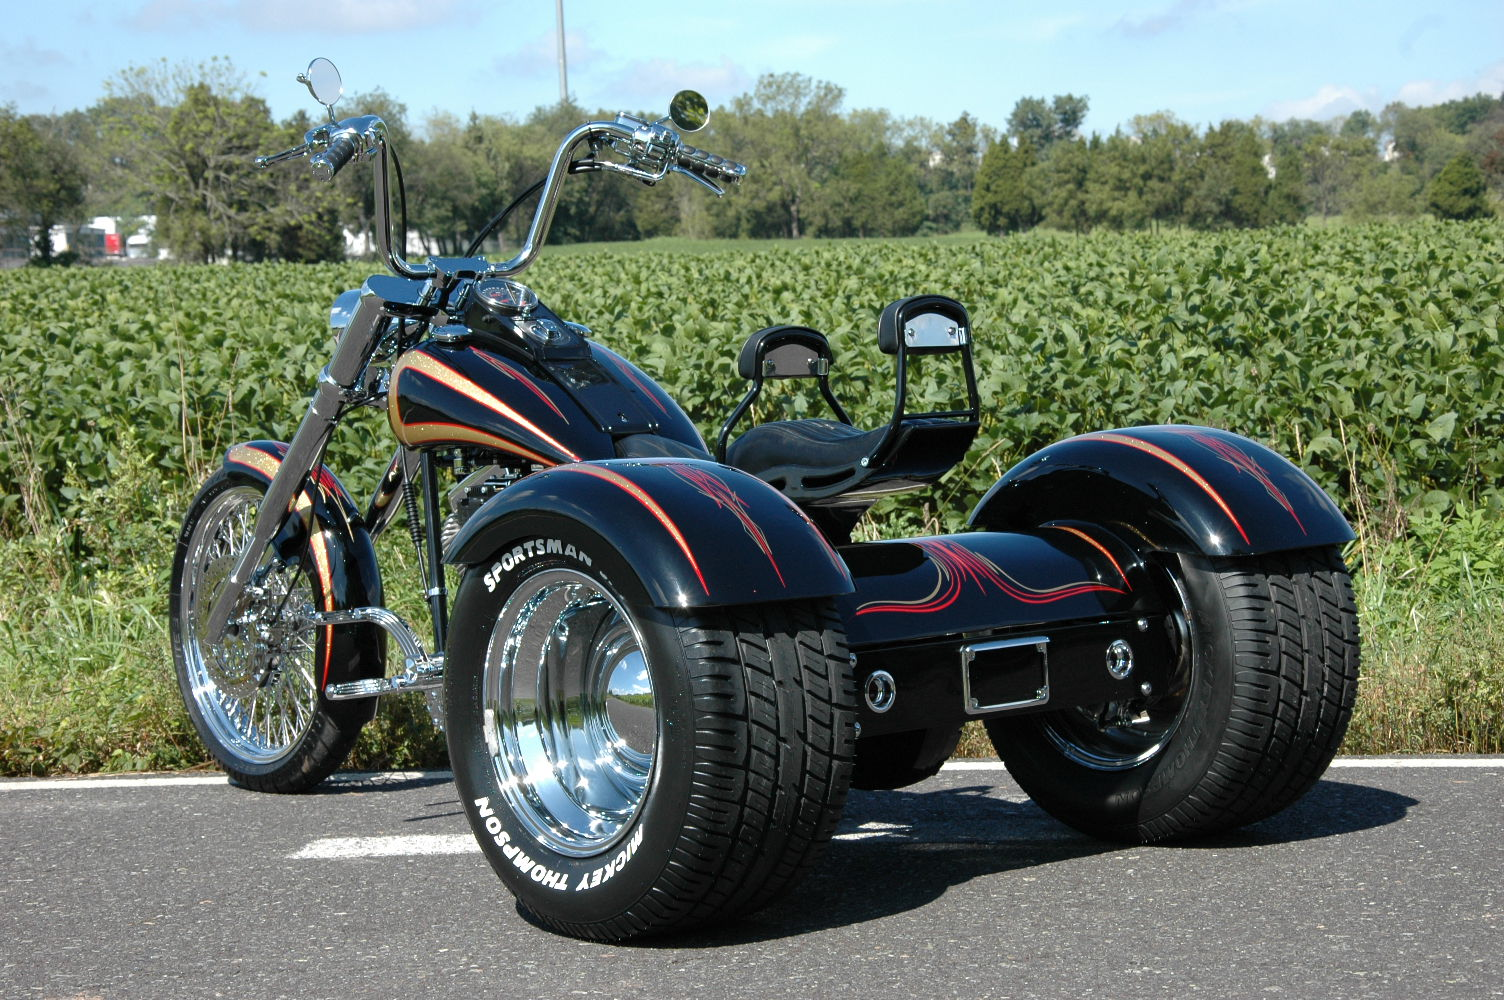 find new trike softail chopper frame rolling chassis harley motorcycle in zieglerville. Black Bedroom Furniture Sets. Home Design Ideas